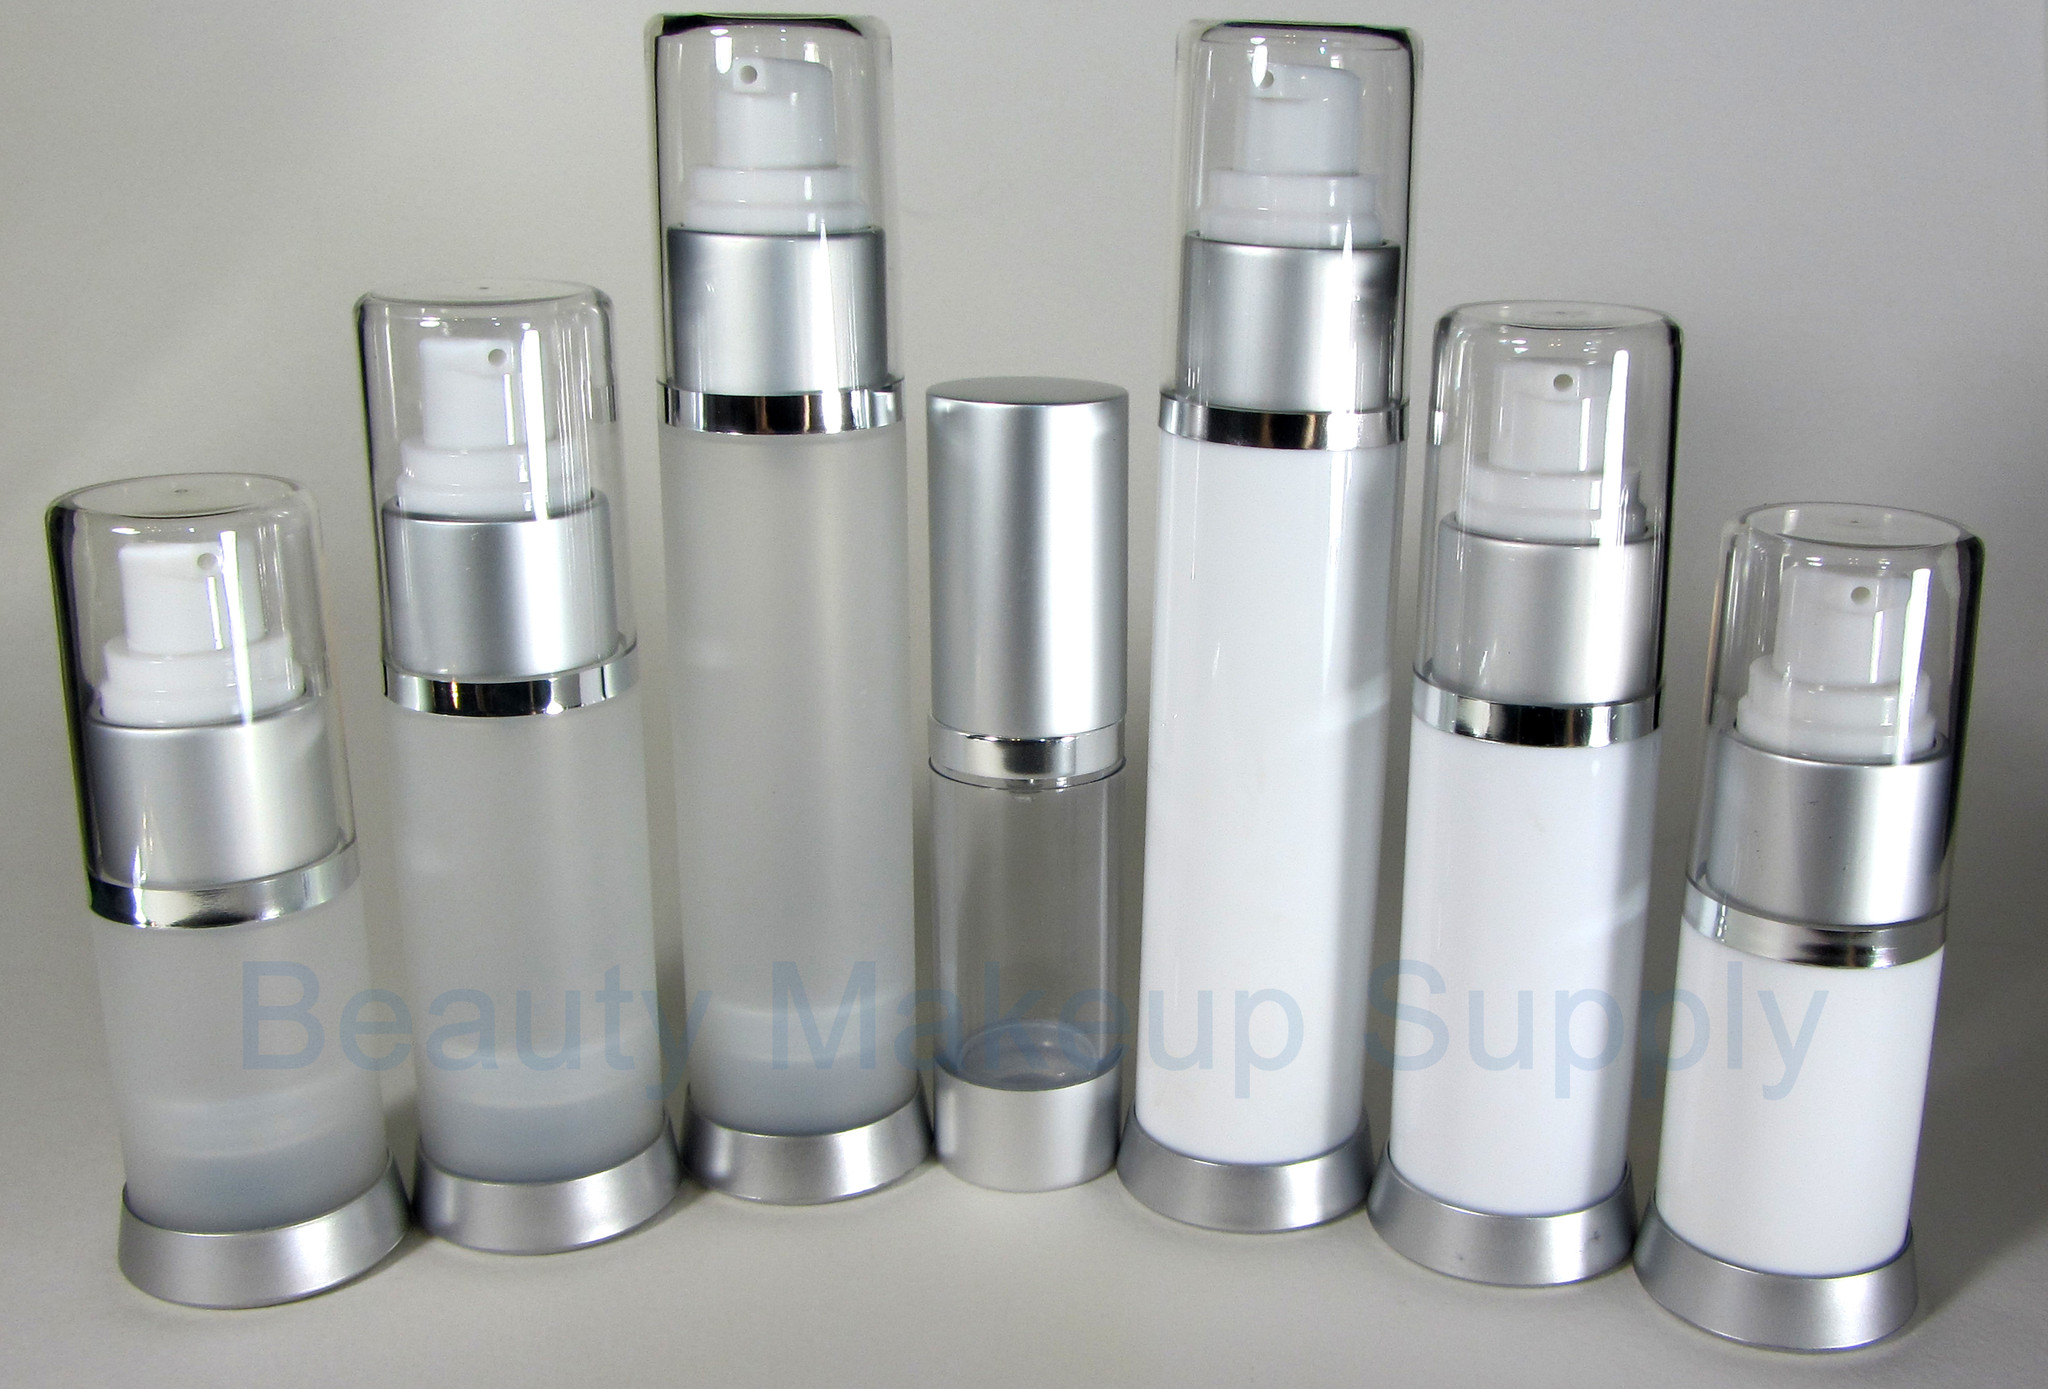 What is an Airless Bottle and what's the advantage in using them?